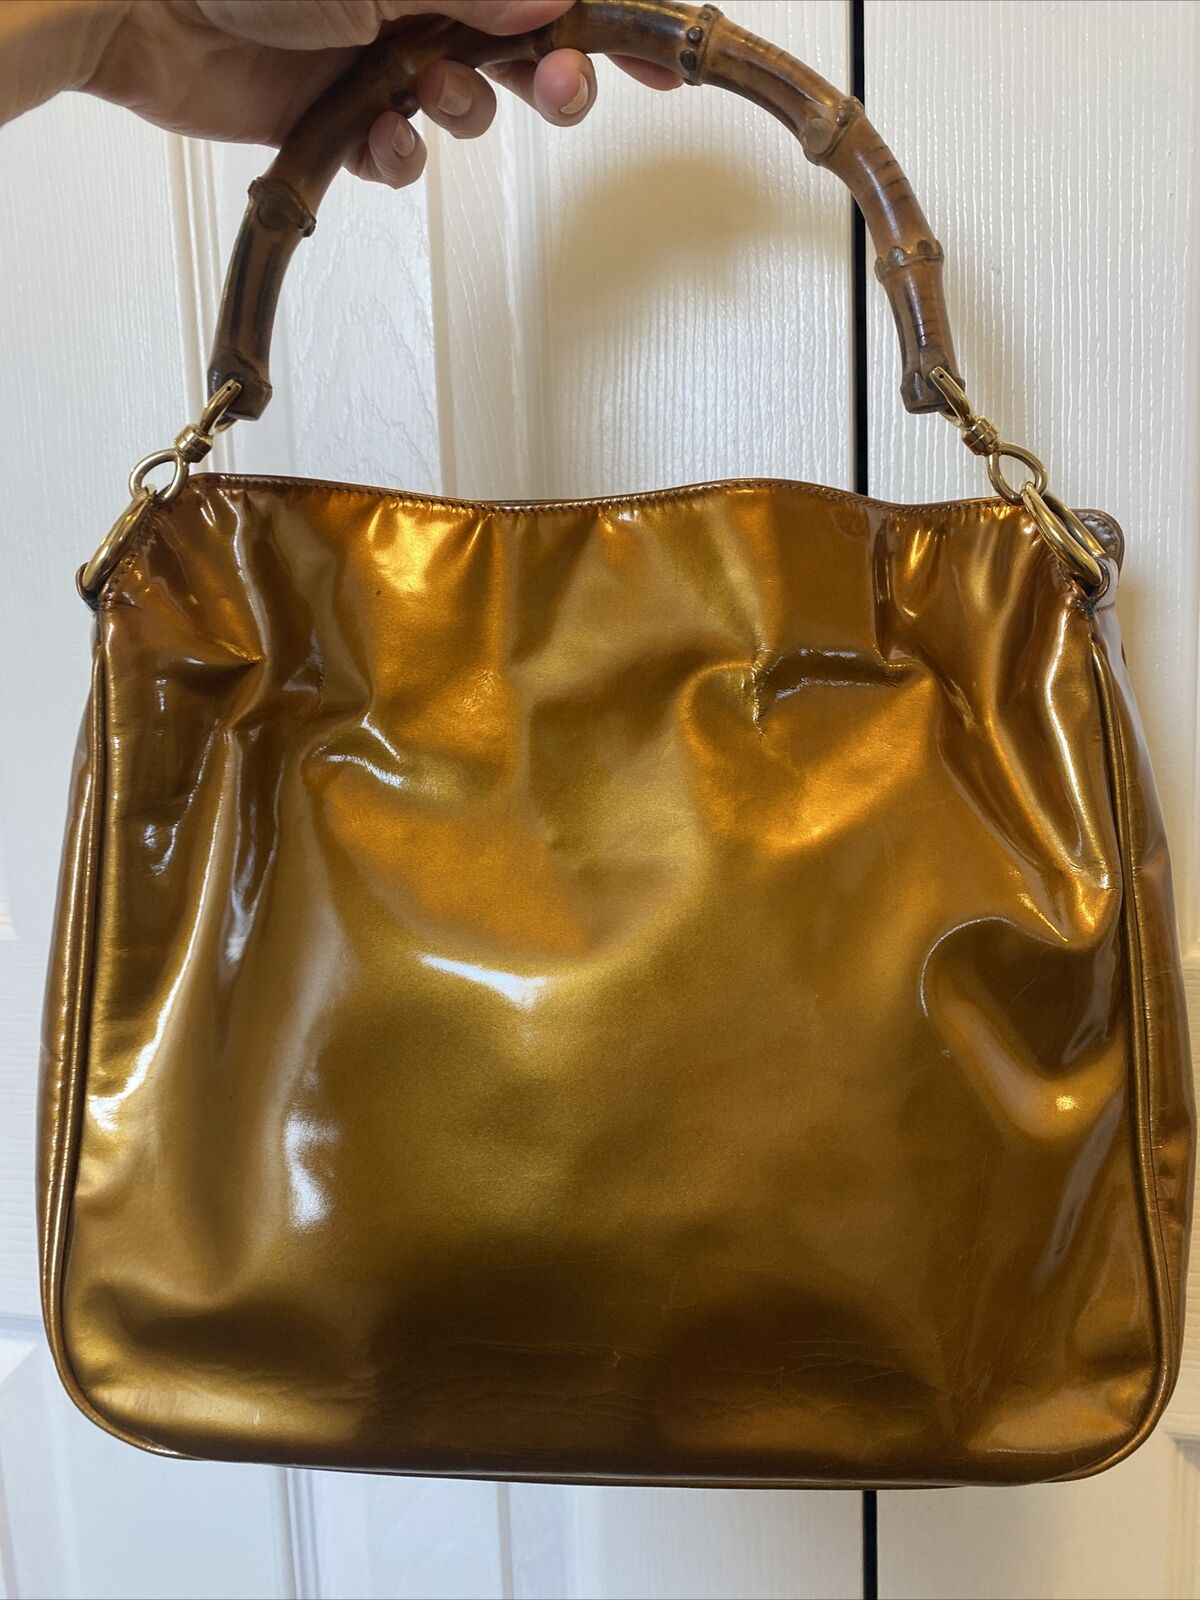 GUCCI COPPER BAMBOO HANDLE BAG VINTAGE DIANA LEAT… - image 4